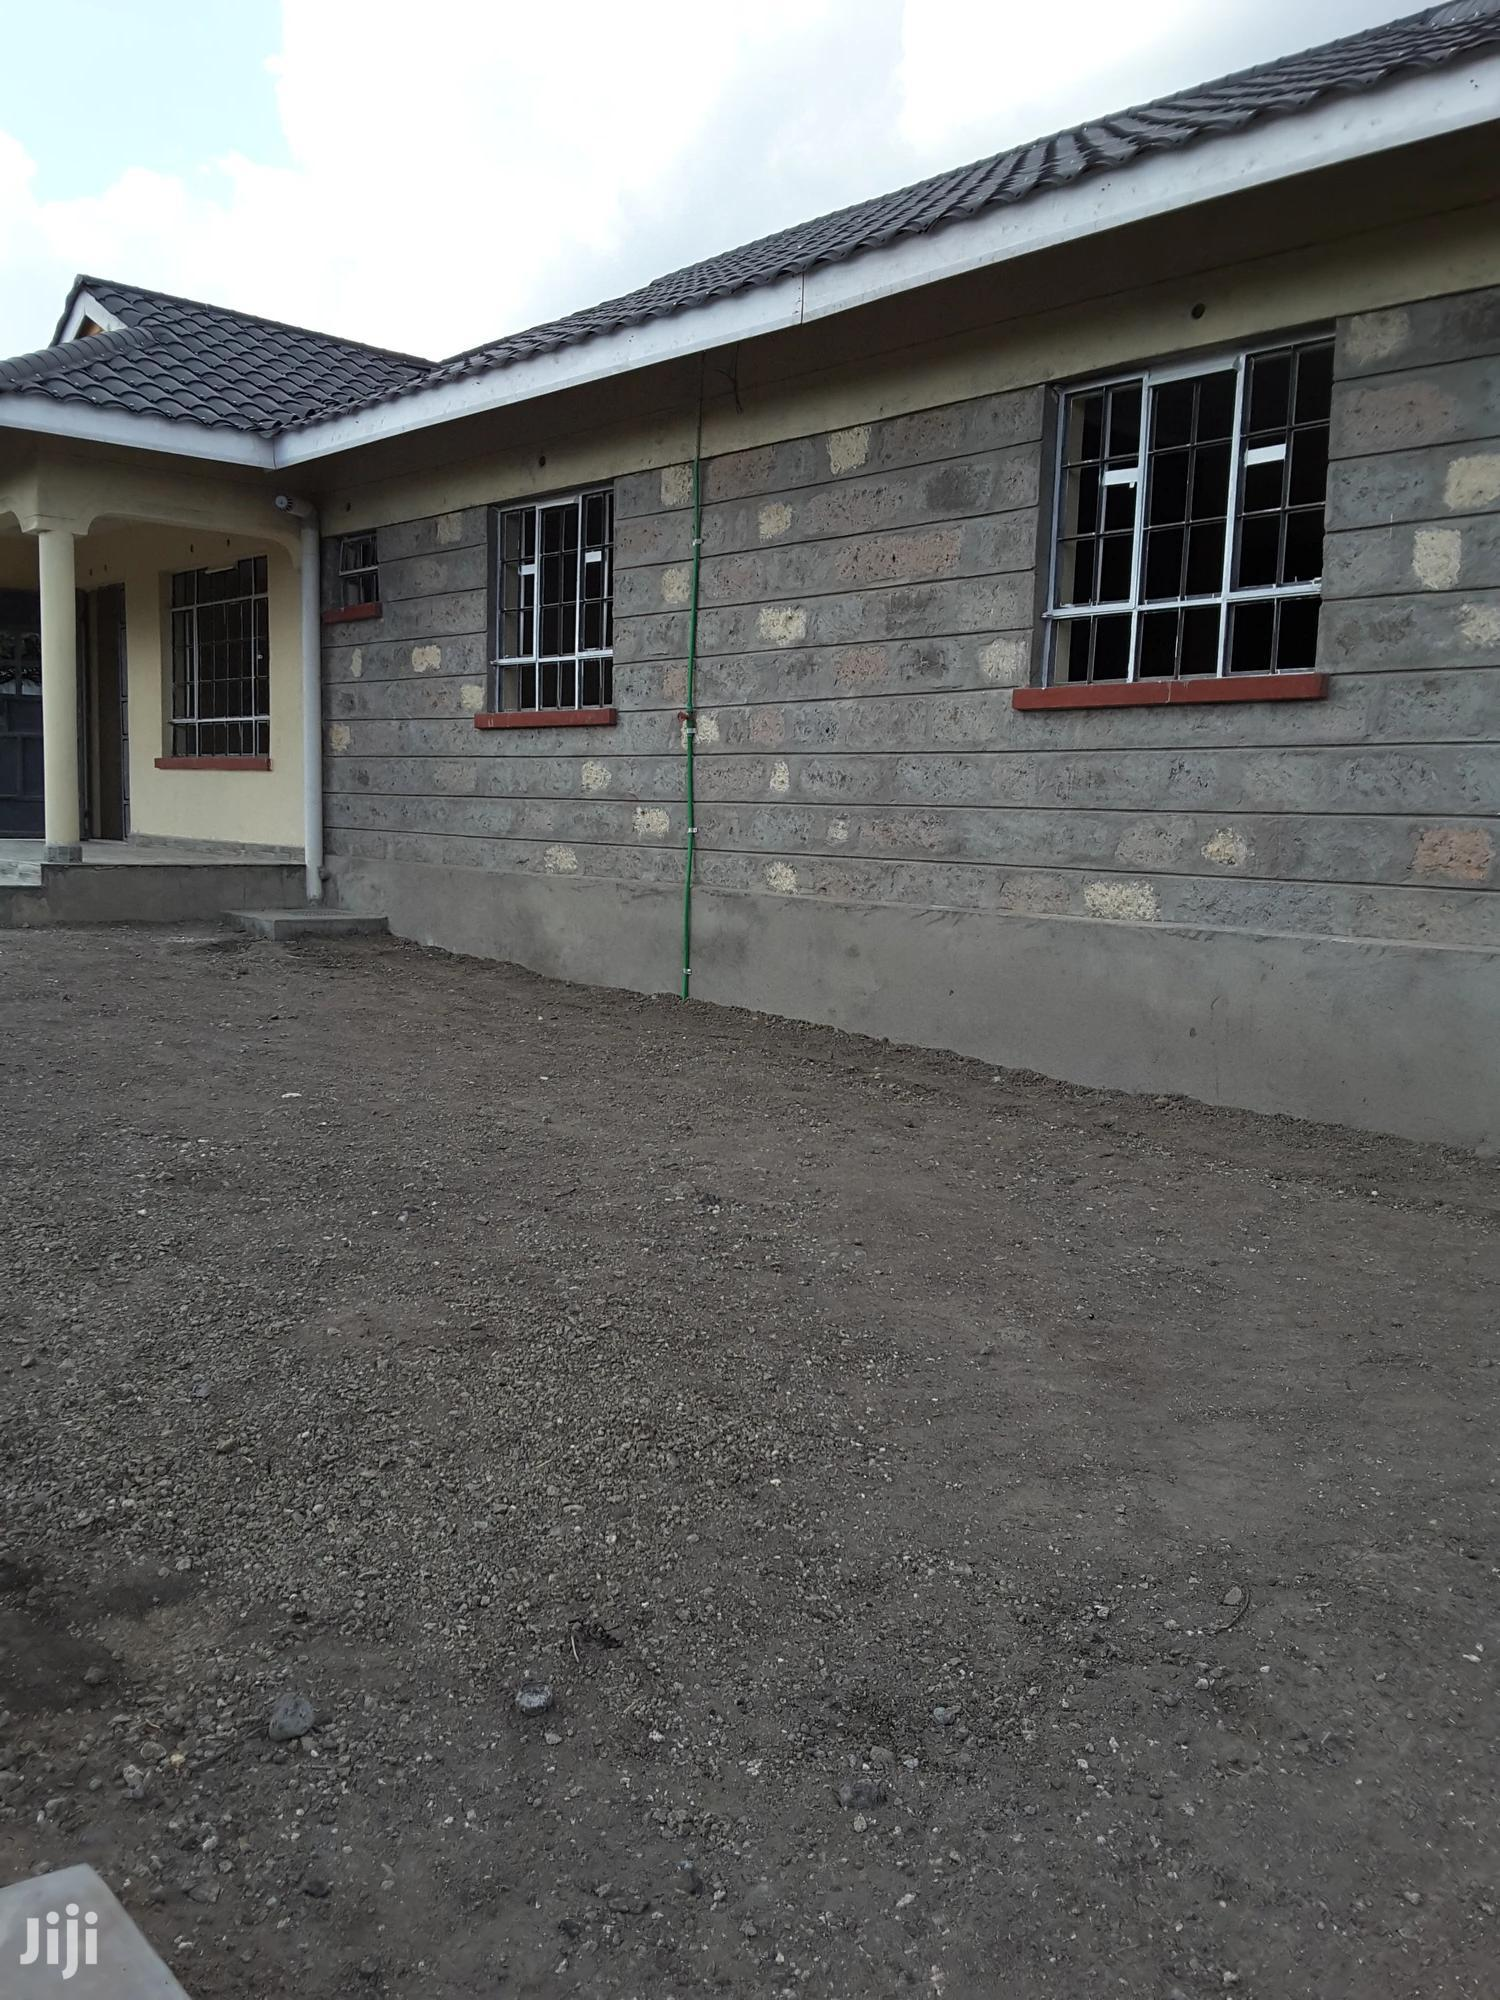 Lovely 4 BR House In Ongata Rongai   Houses & Apartments For Sale for sale in Ongata Rongai, Kajiado, Kenya